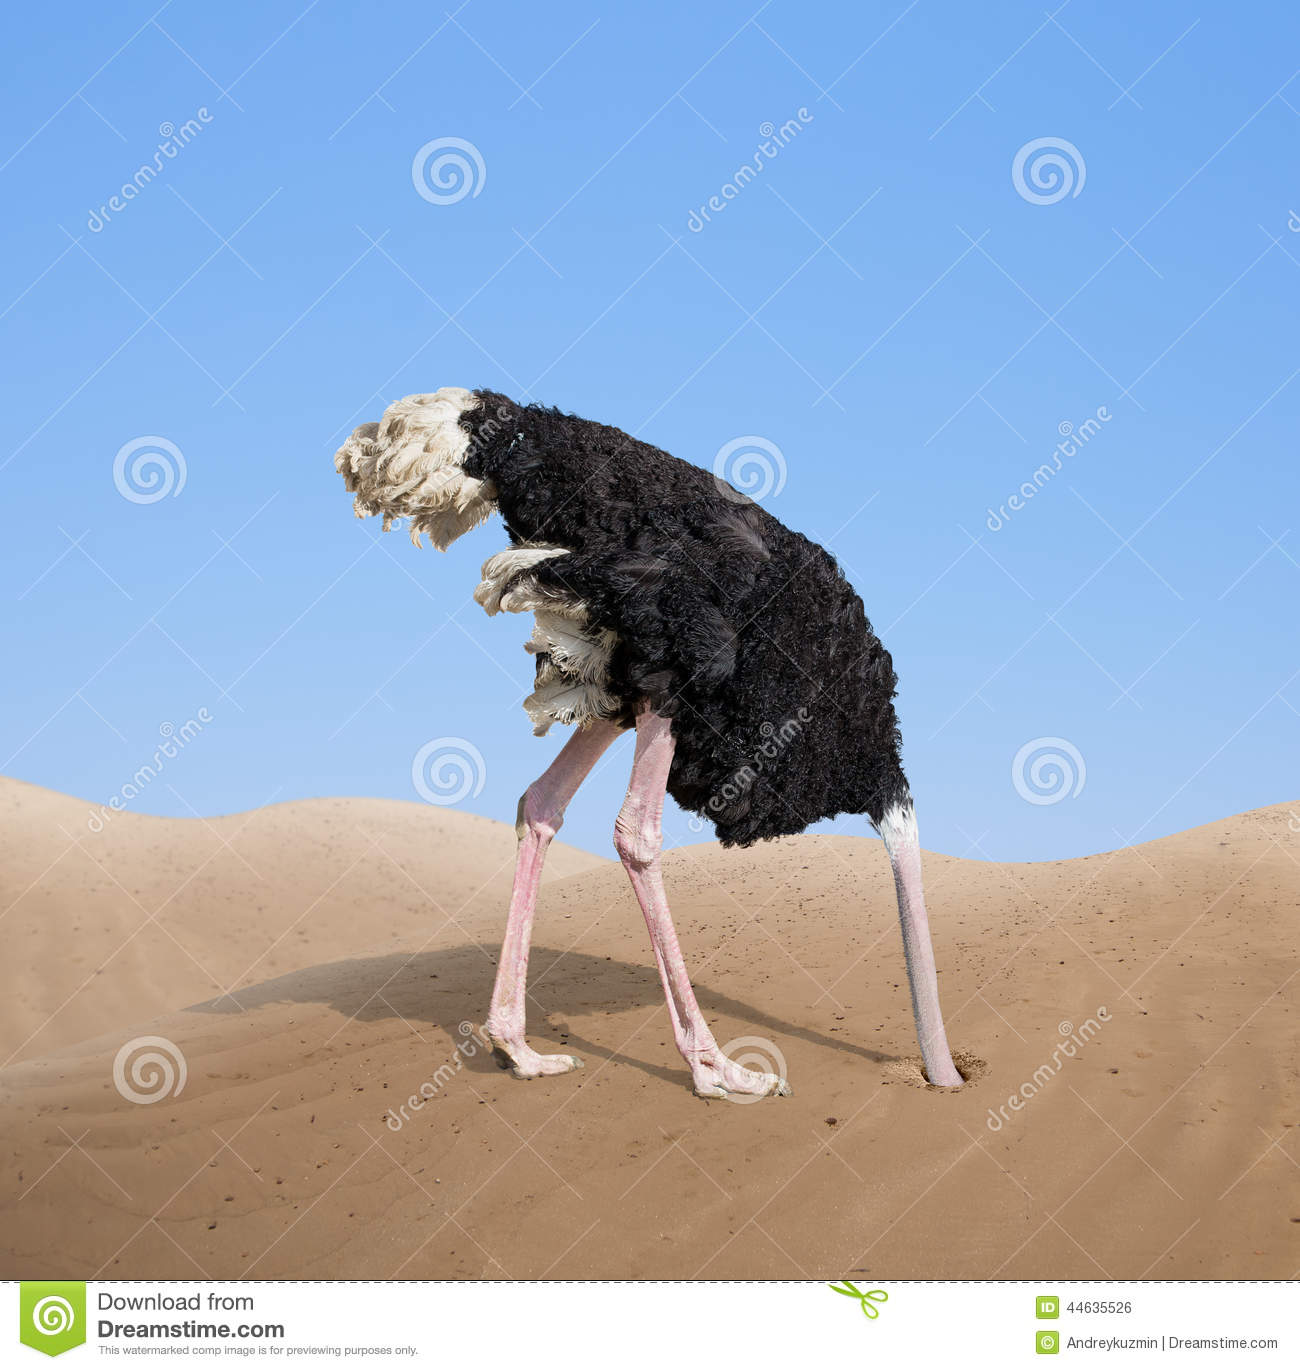 Scared Ostrich Burying Its Head In Sand Stock Photo - Image: 44635526